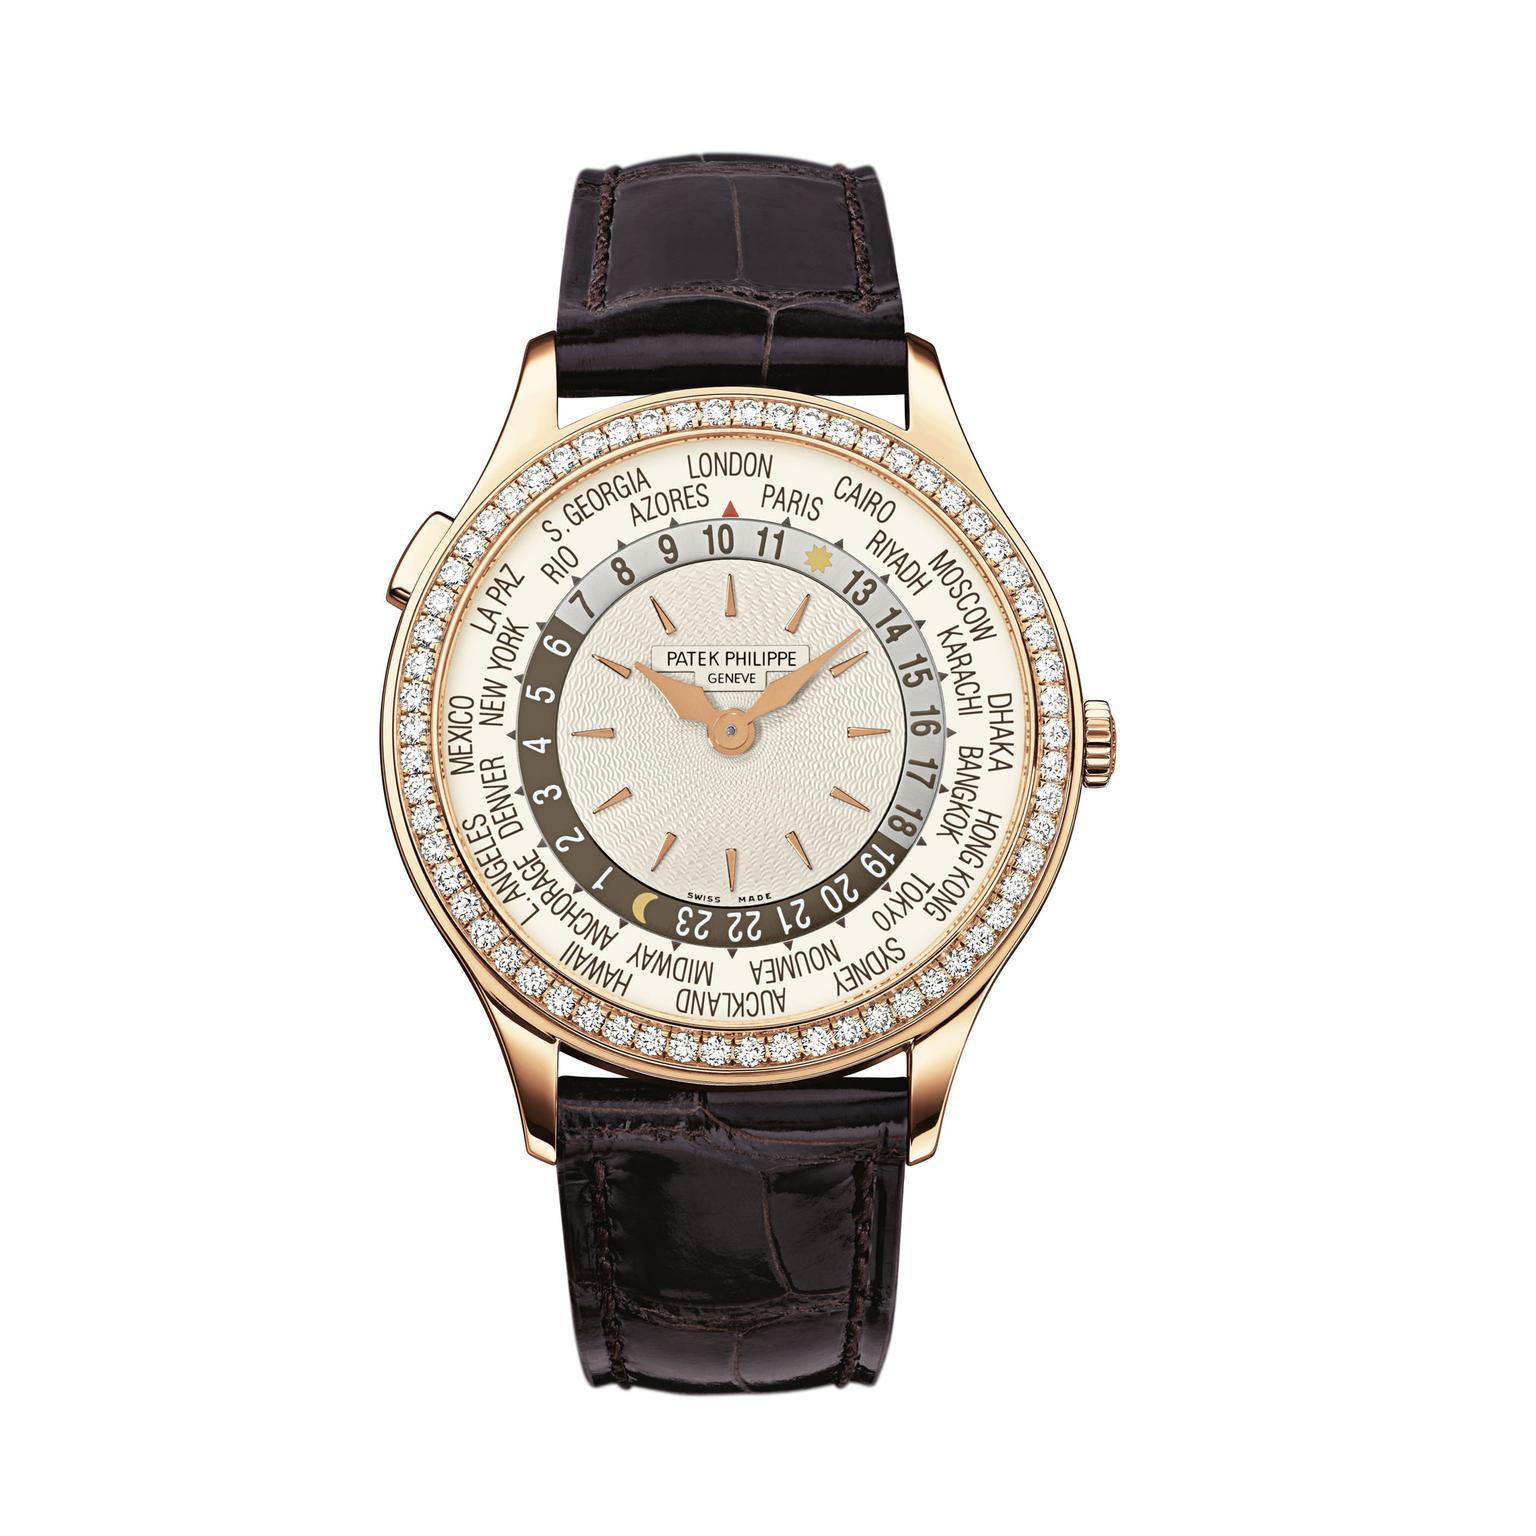 Patek Philippe World Timer Ref. 7130G